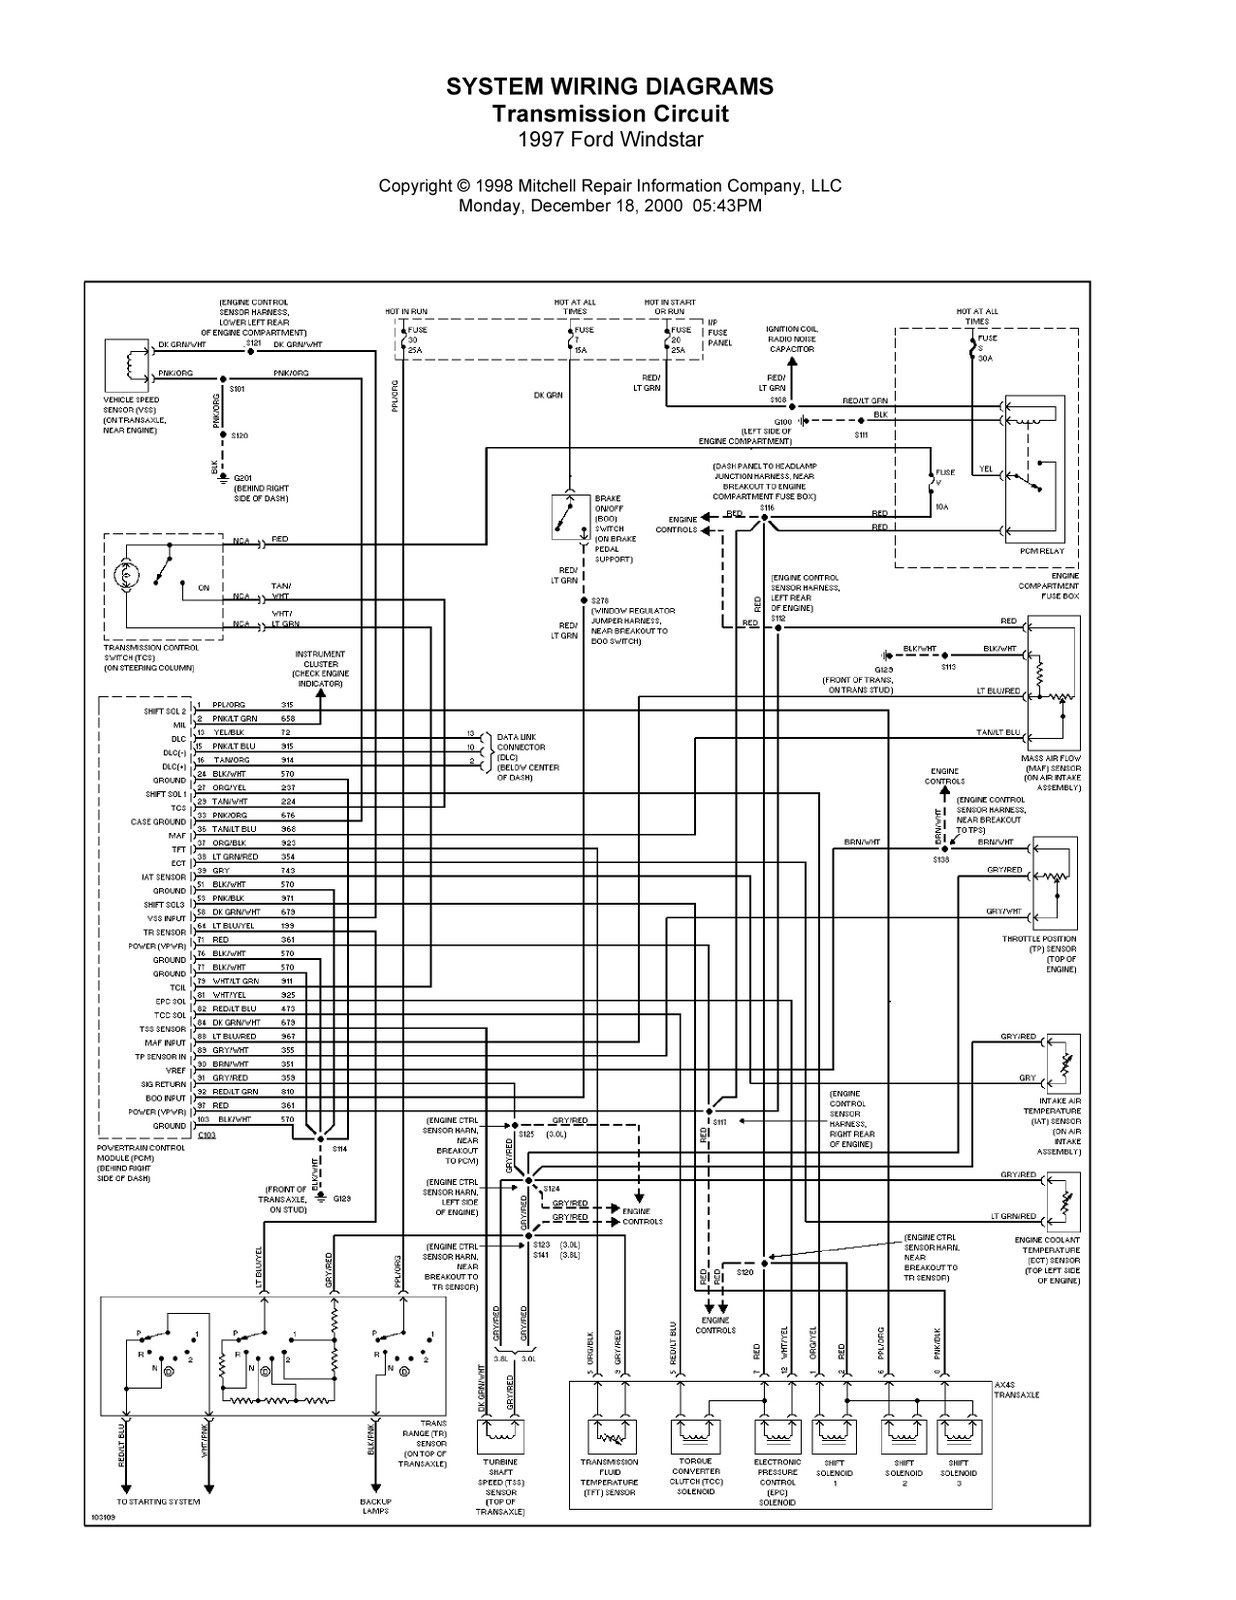 1997 Ford Windstar Complete System Wiring Diagrams